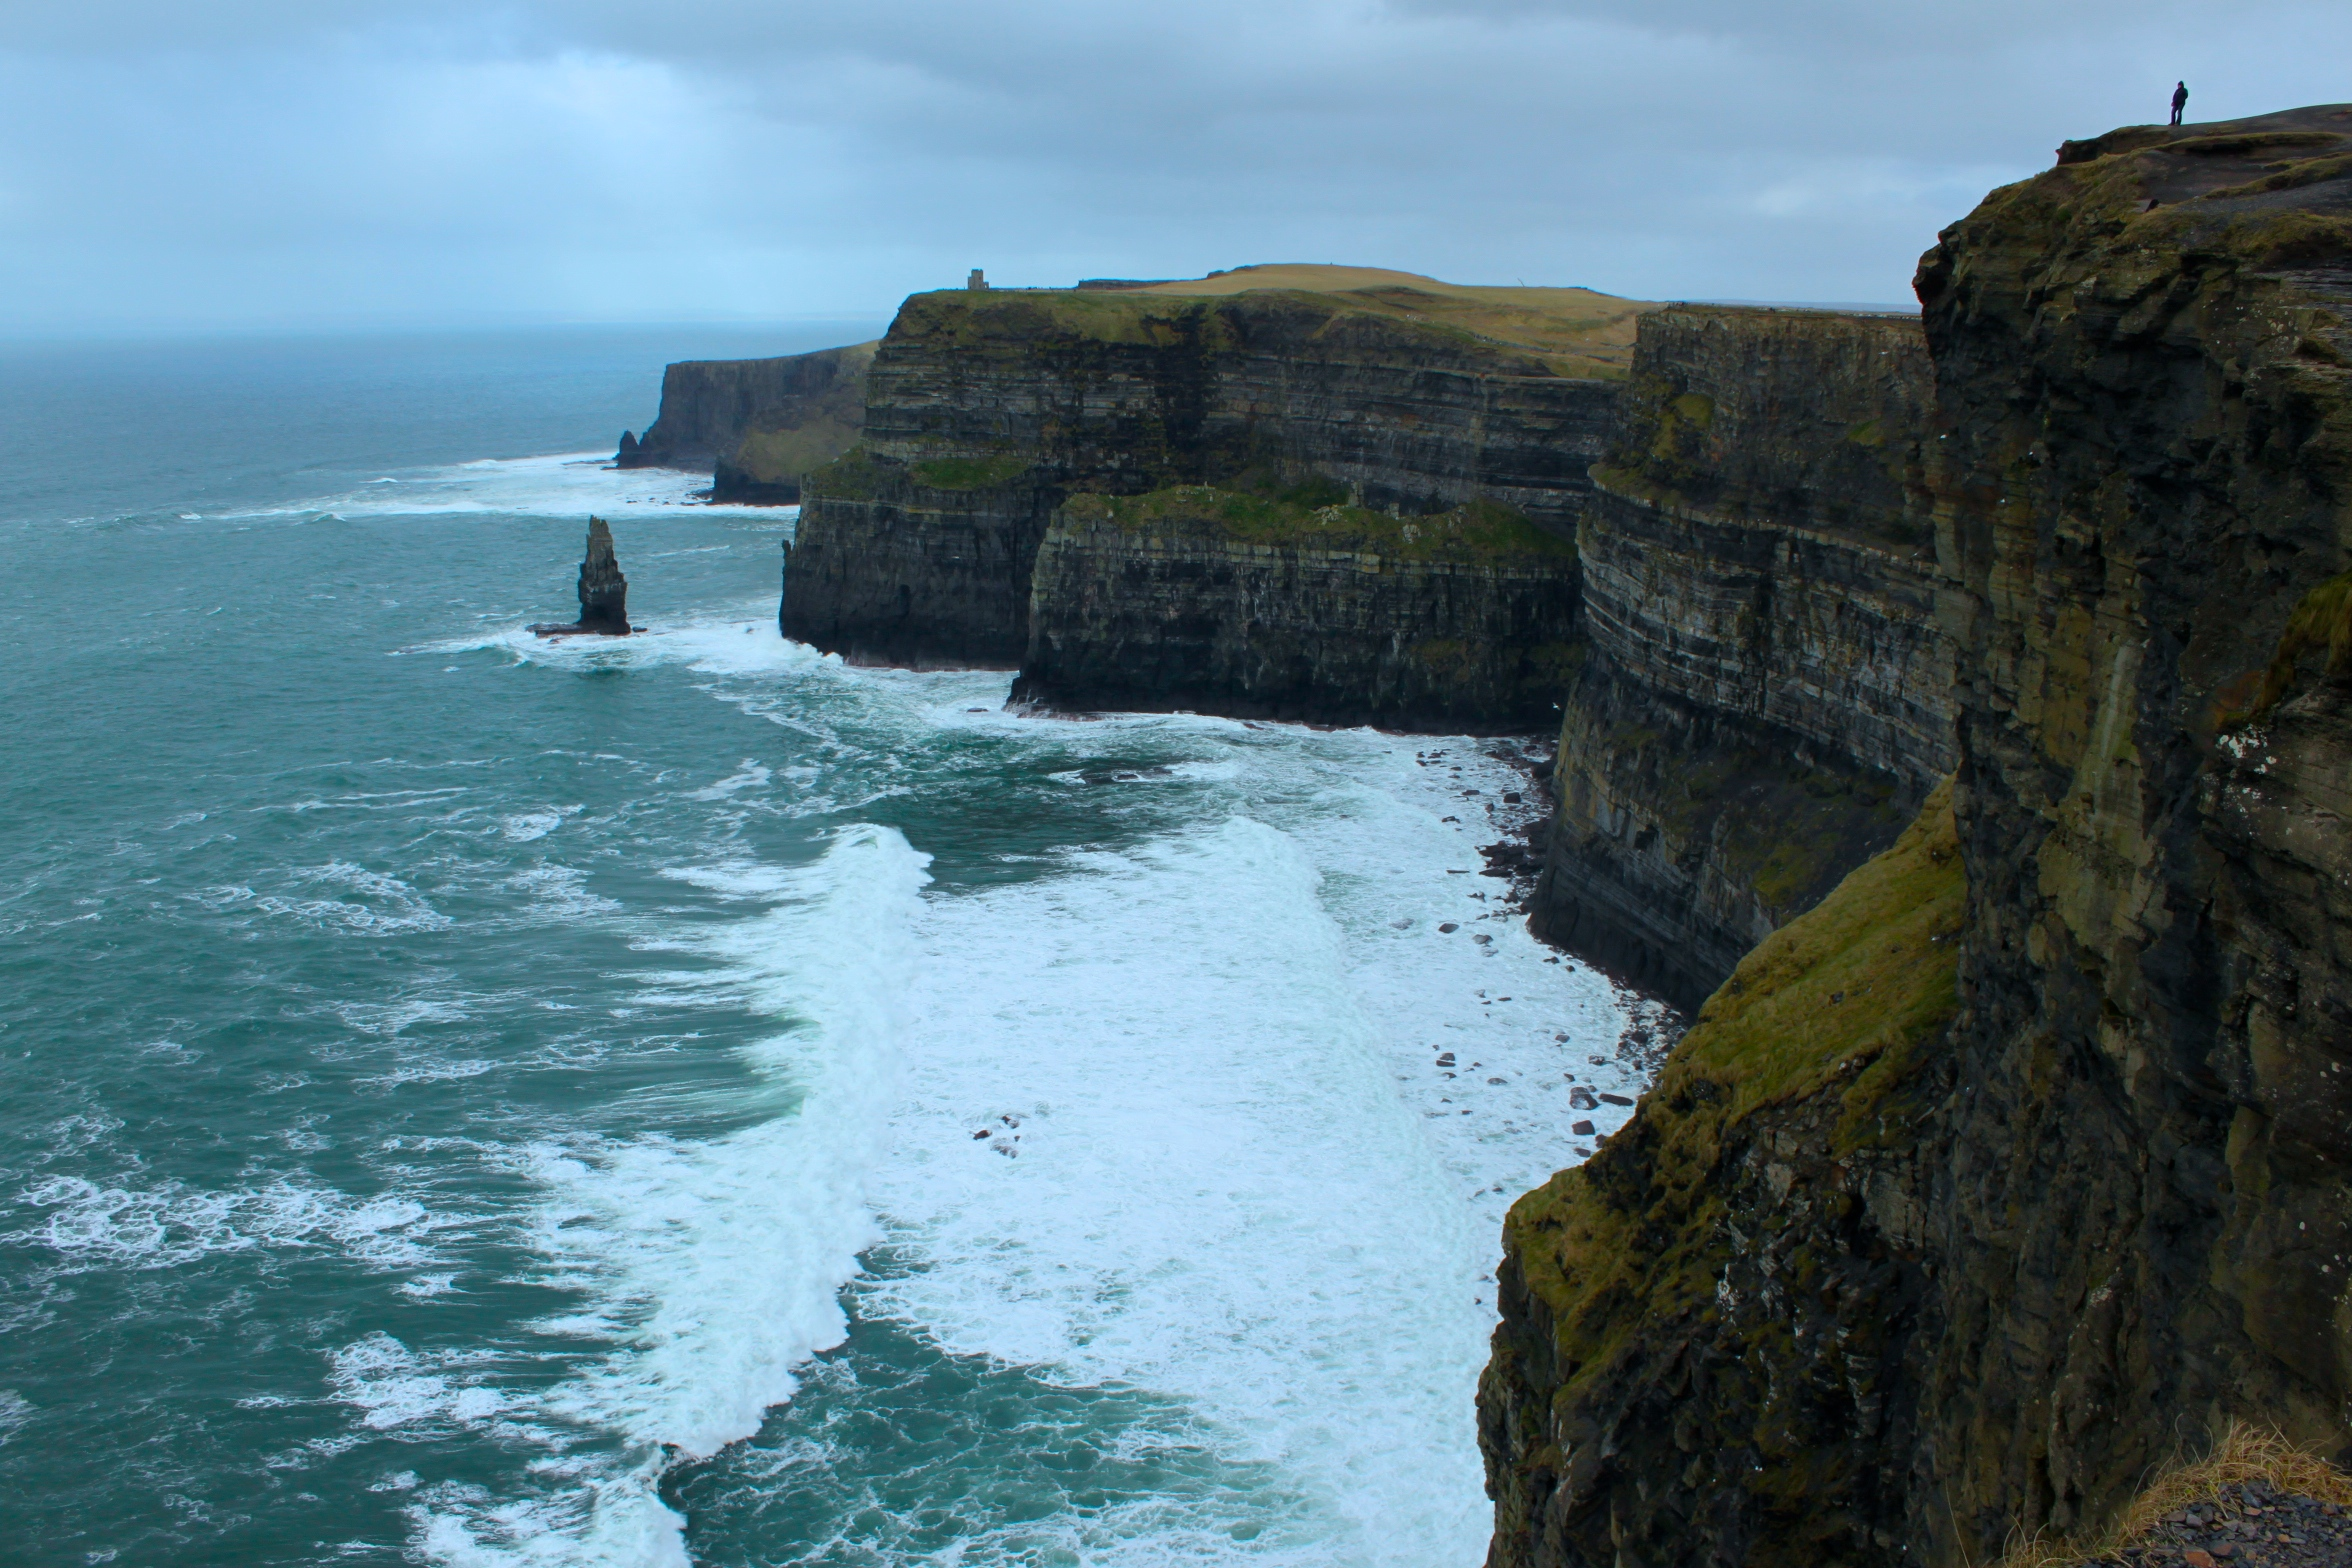 Cliffs of moher and galway excursion study abroad blogs ies abroad - Cliffs of moher pictures ...